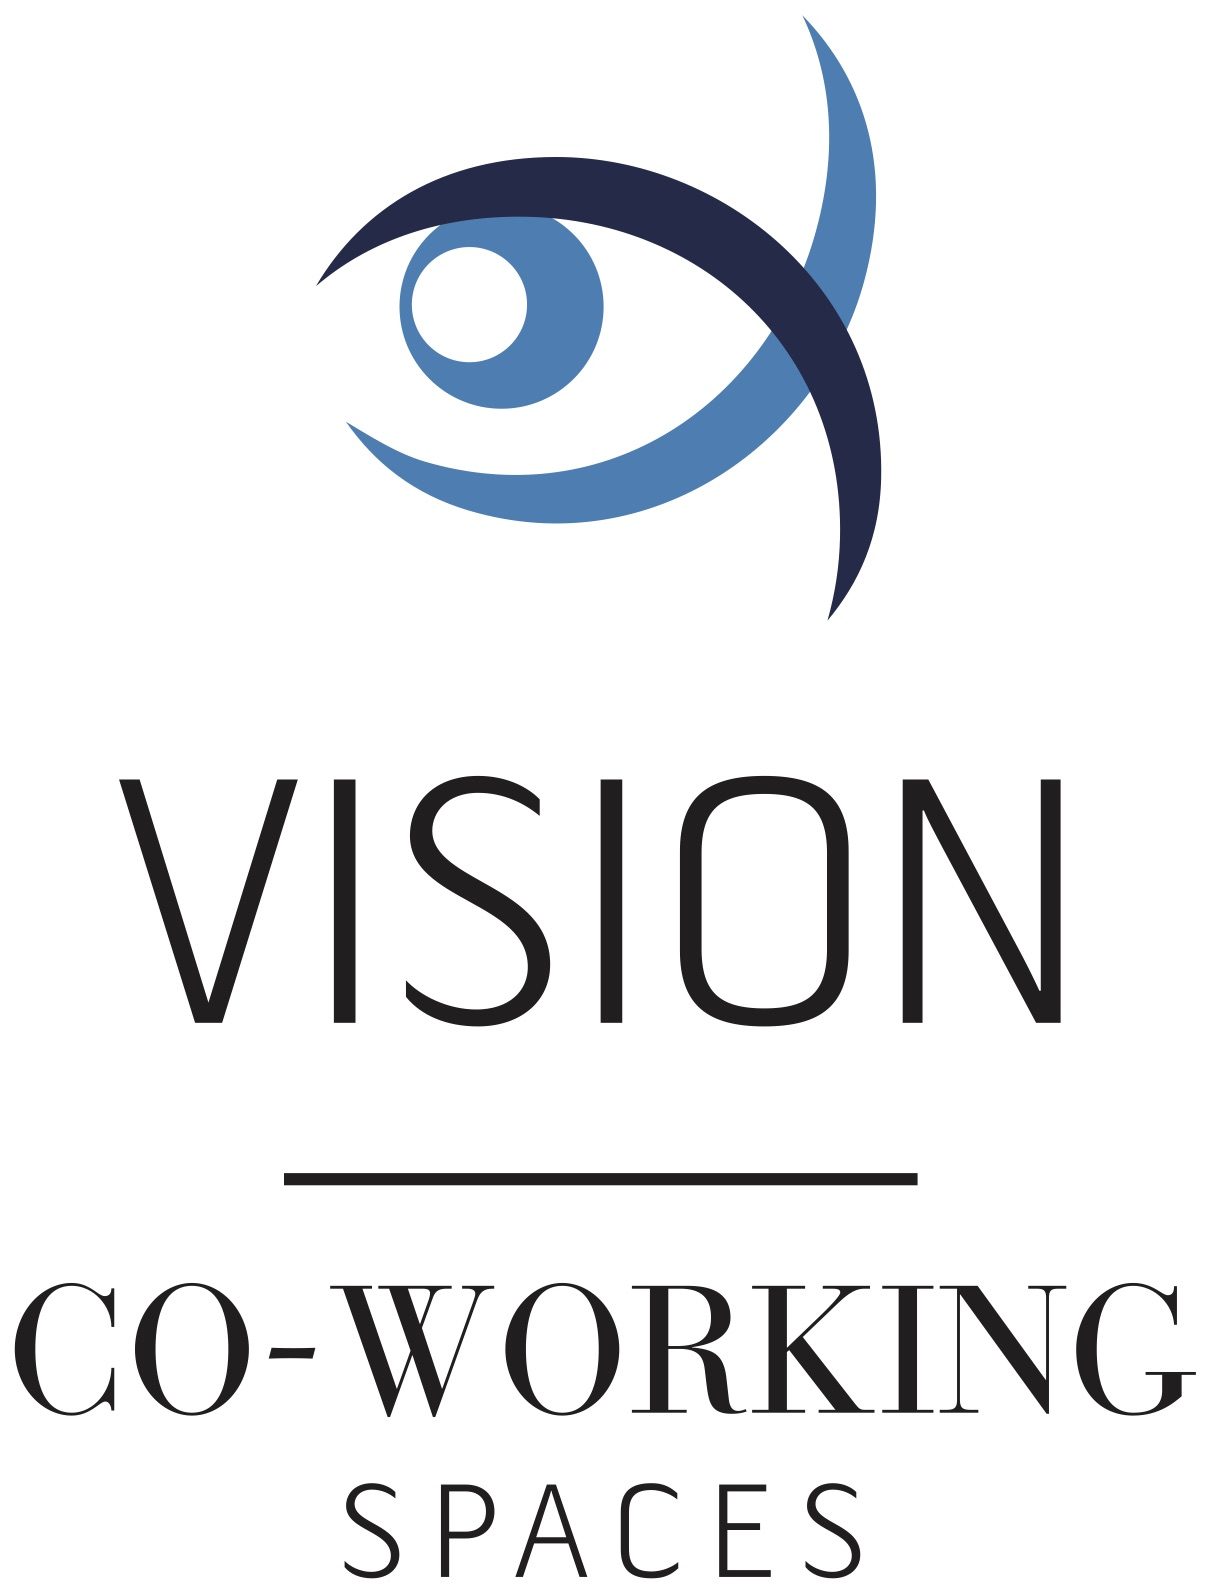 Vision co-working spaces logo